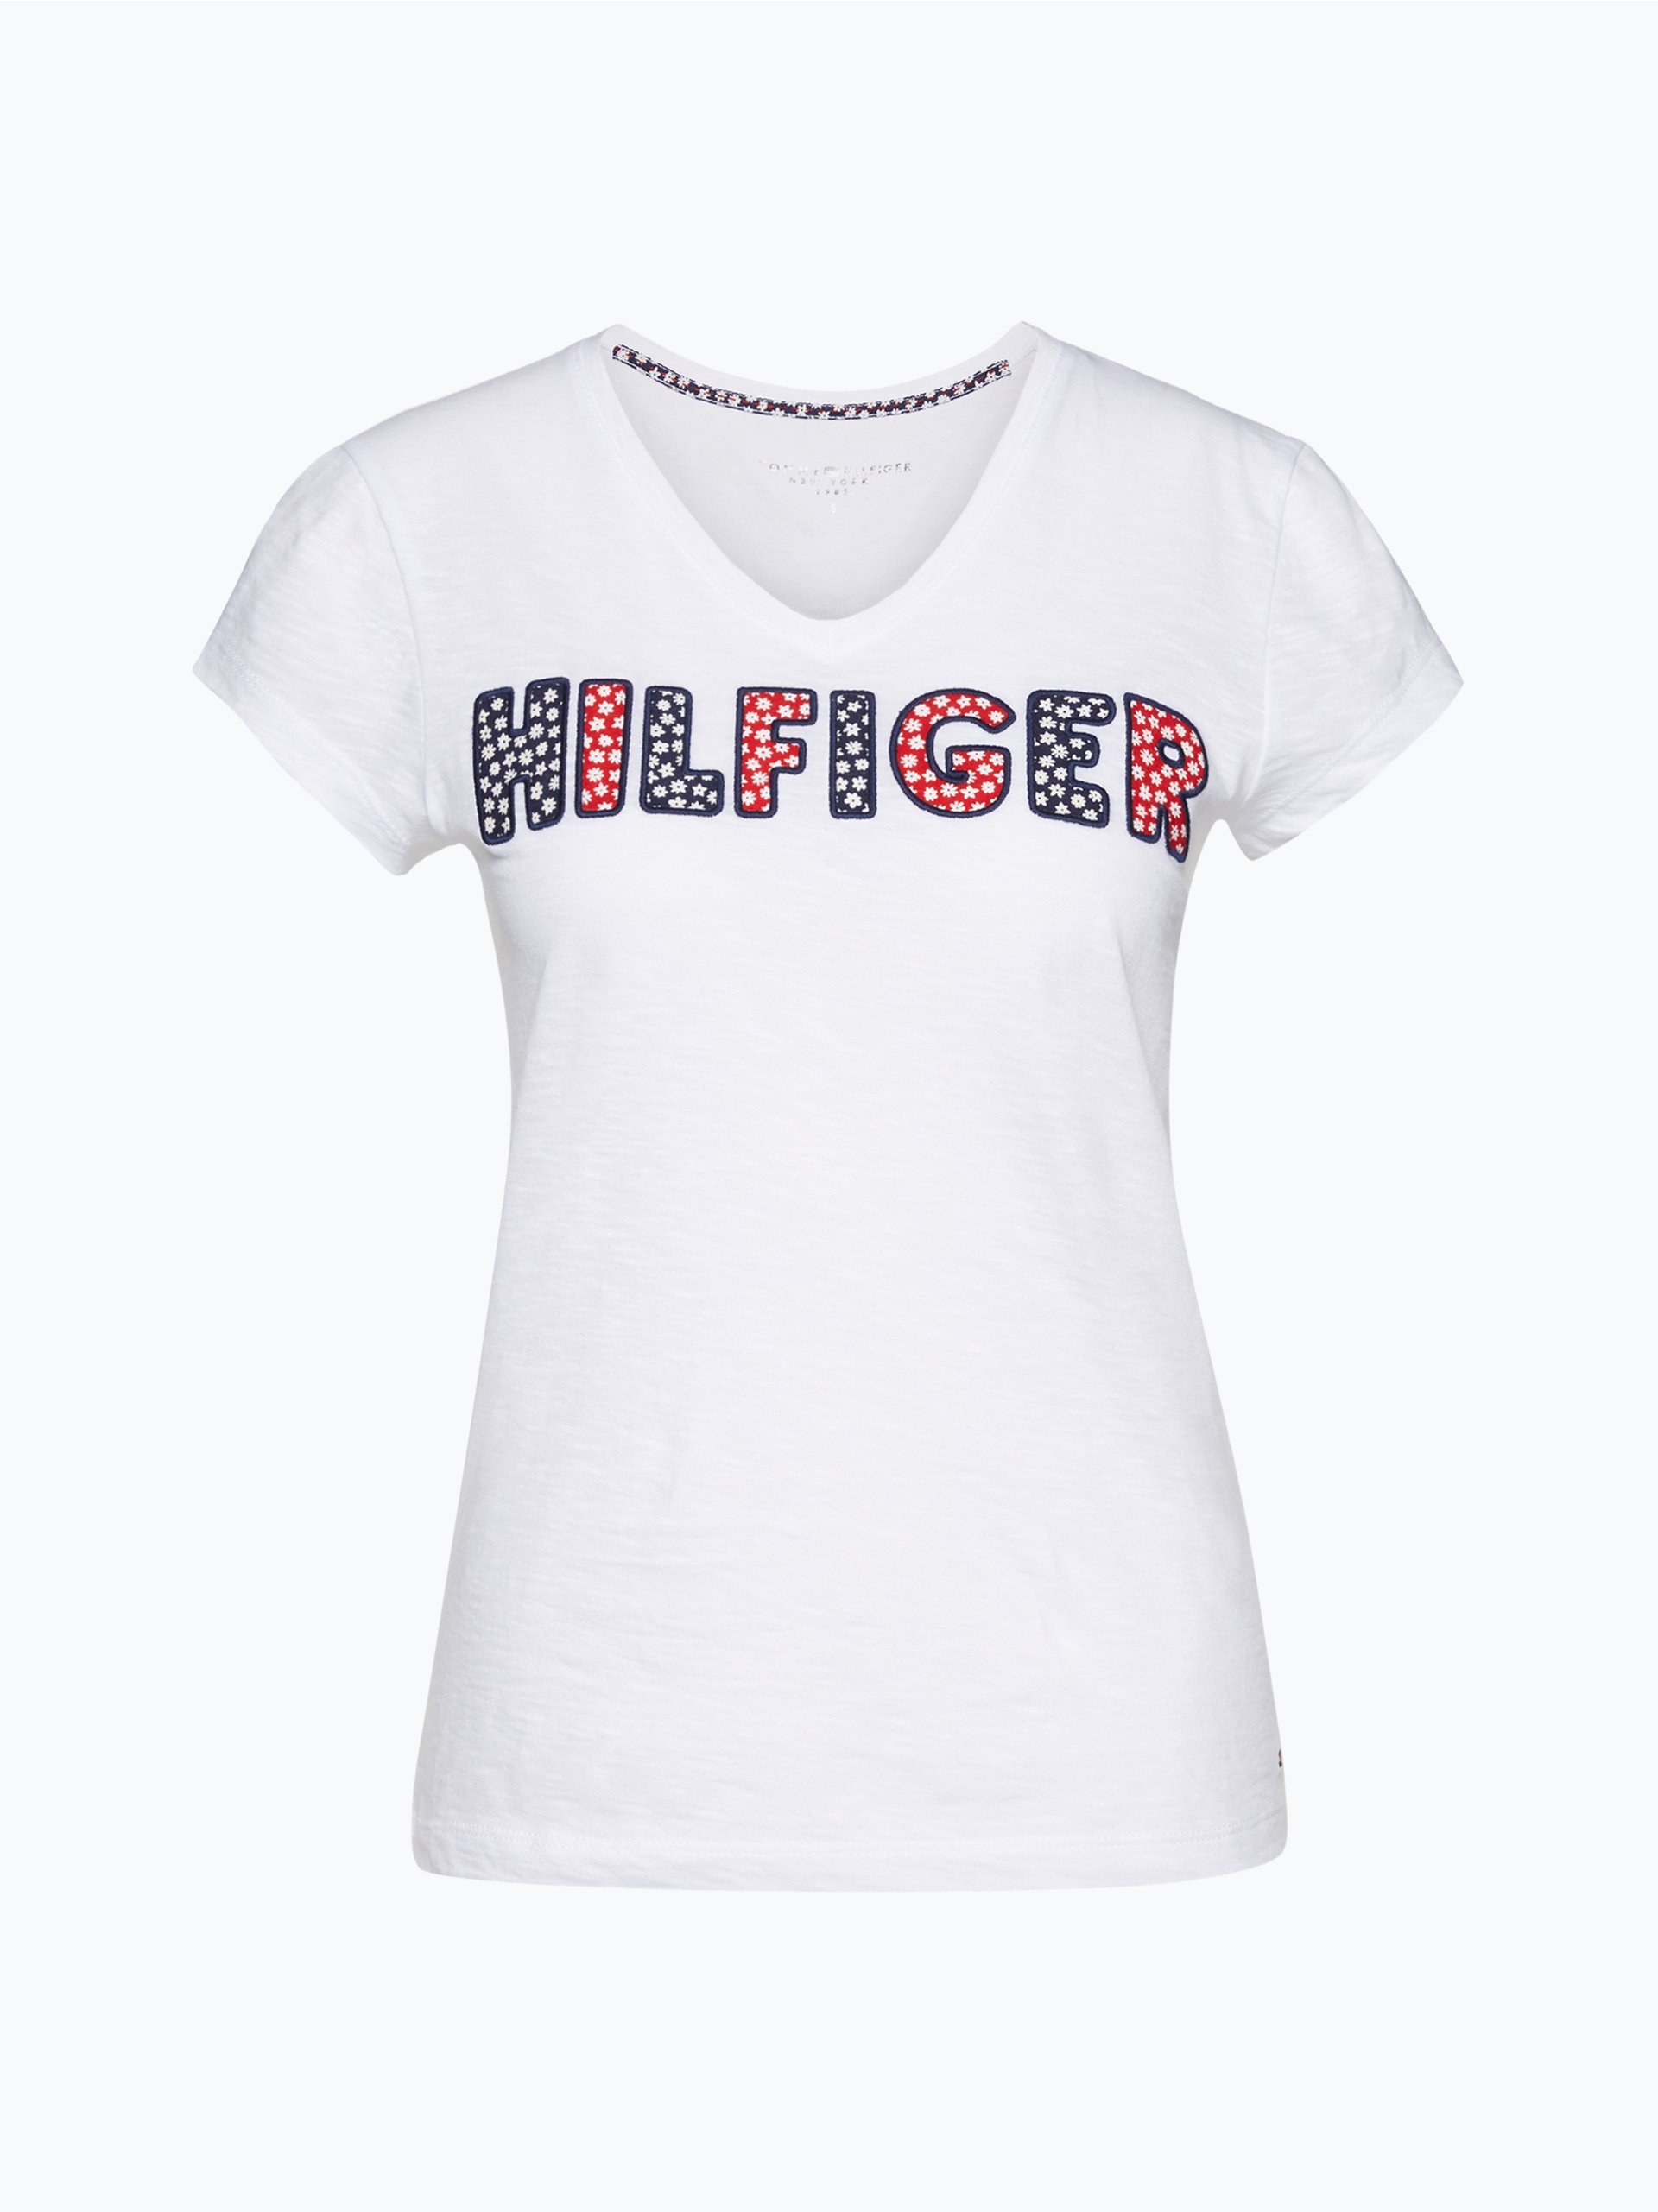 tommy hilfiger damen t shirt wei gemustert online kaufen. Black Bedroom Furniture Sets. Home Design Ideas